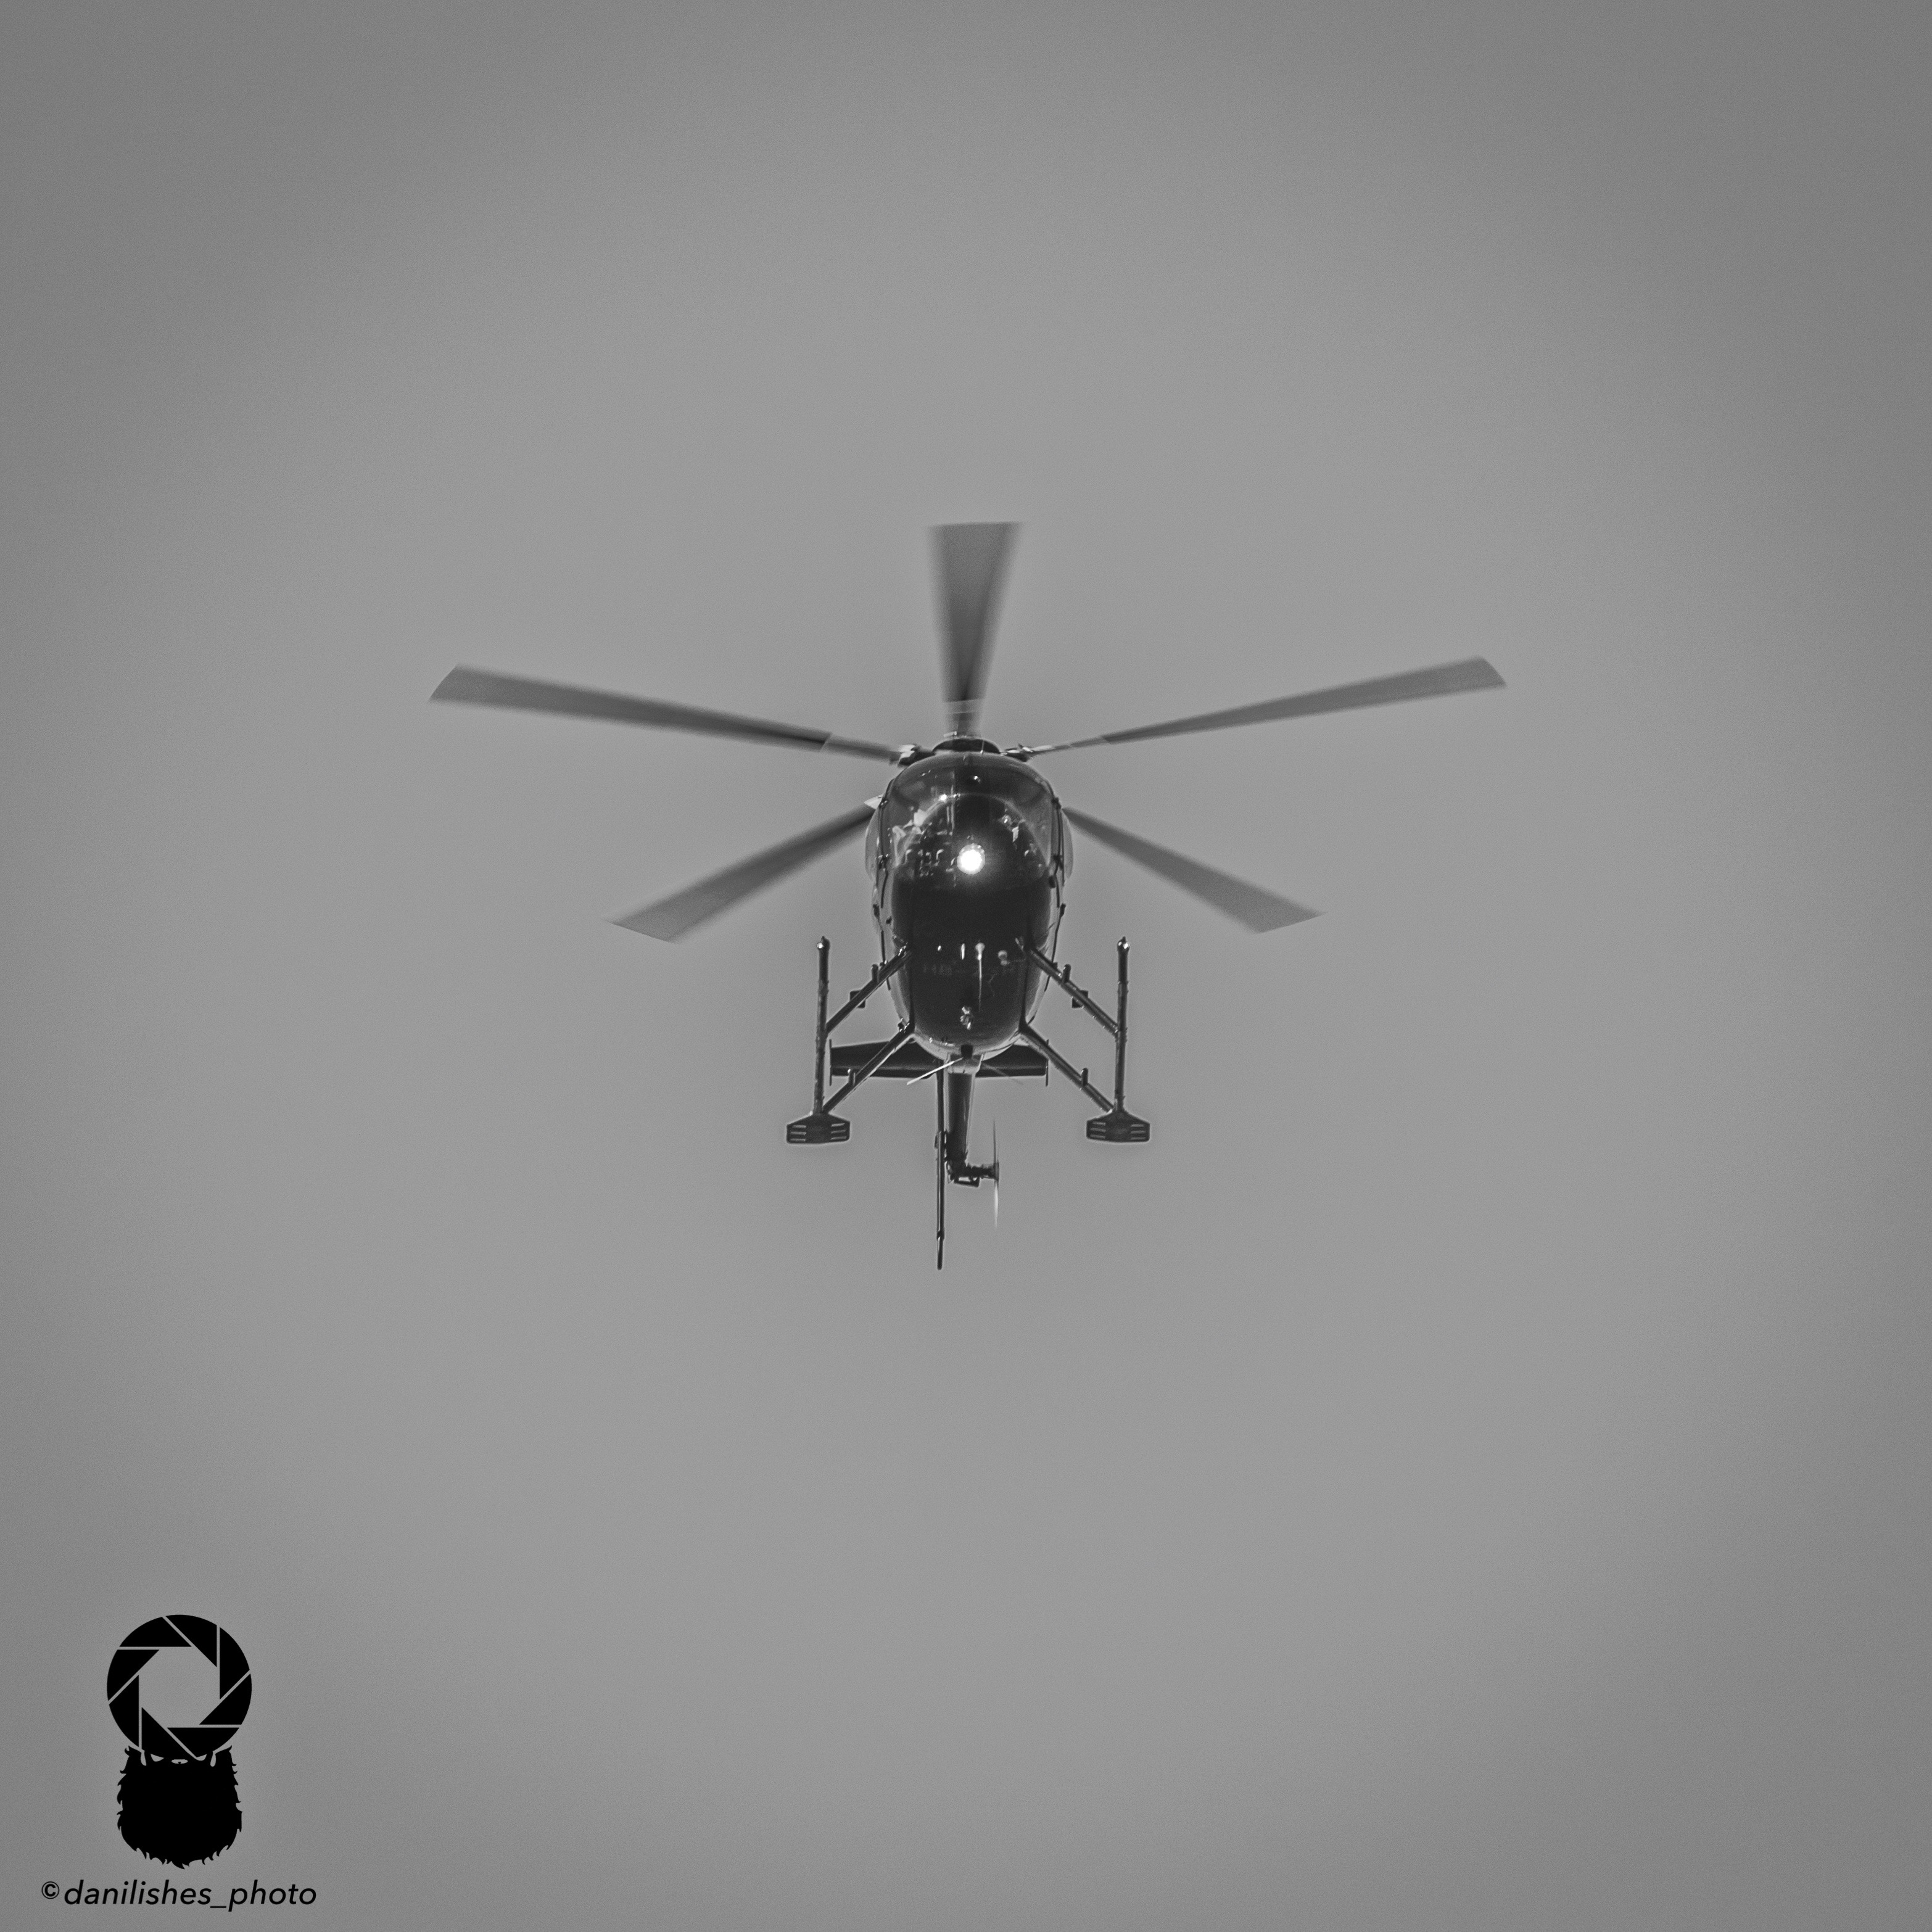 ...copter...